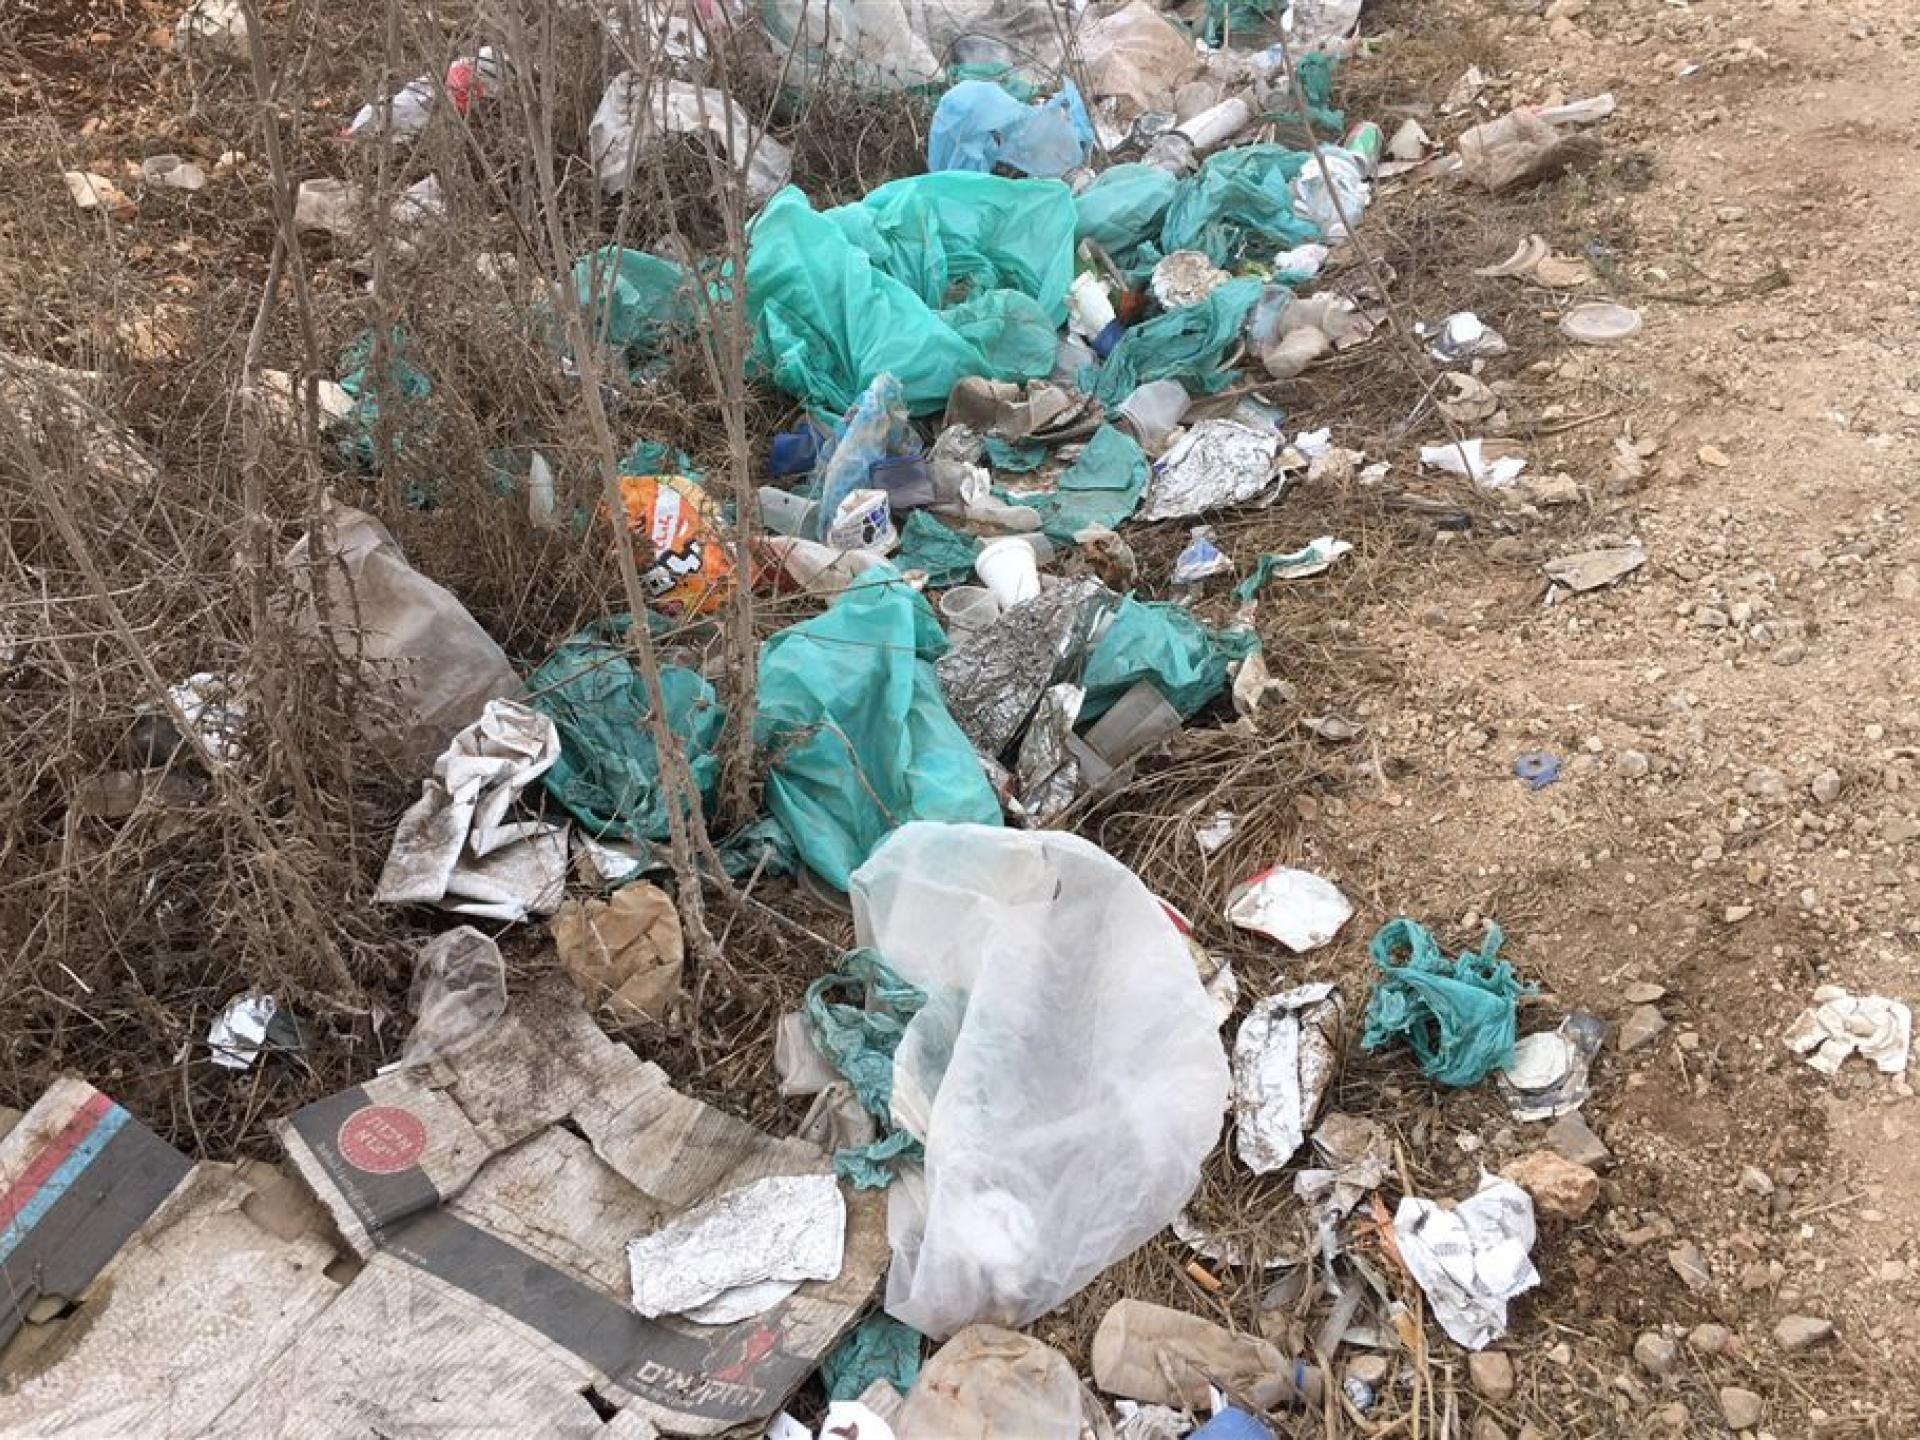 Tura – Shaked Checkpoint: Why bother keeping the occupied territories clean? Who cares?